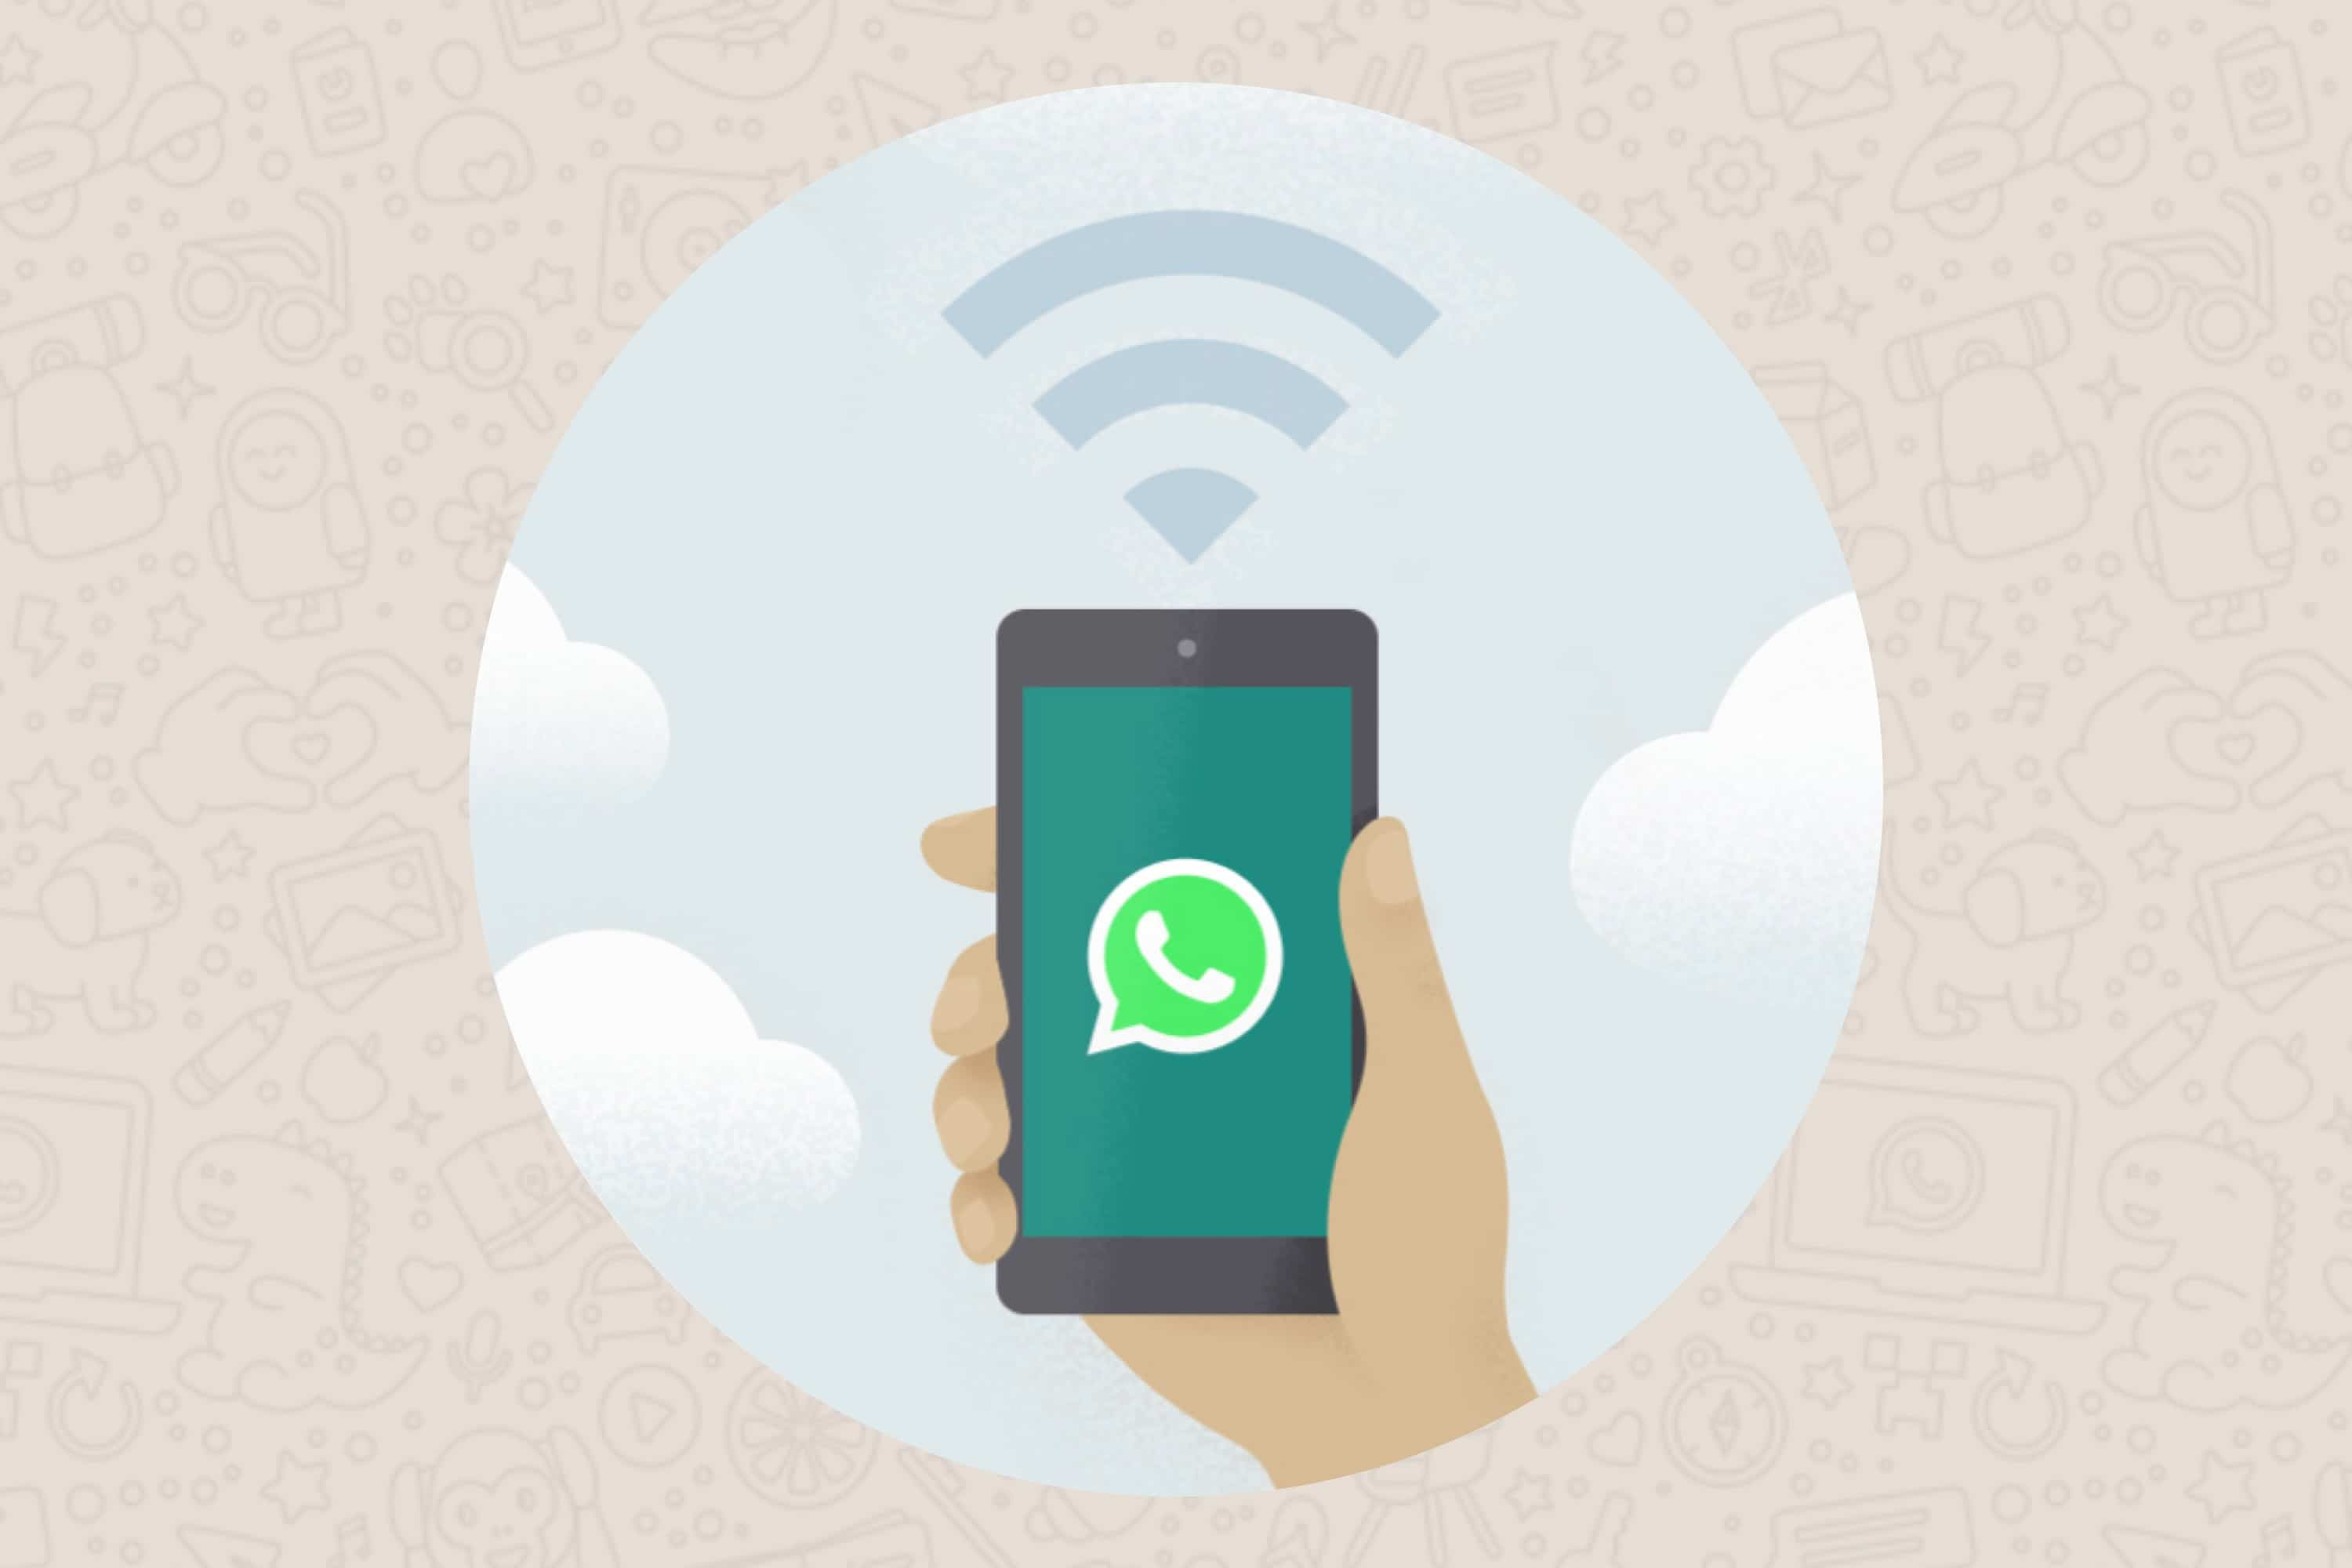 customize-chats-with-new-whatsapp-update-20201201-1